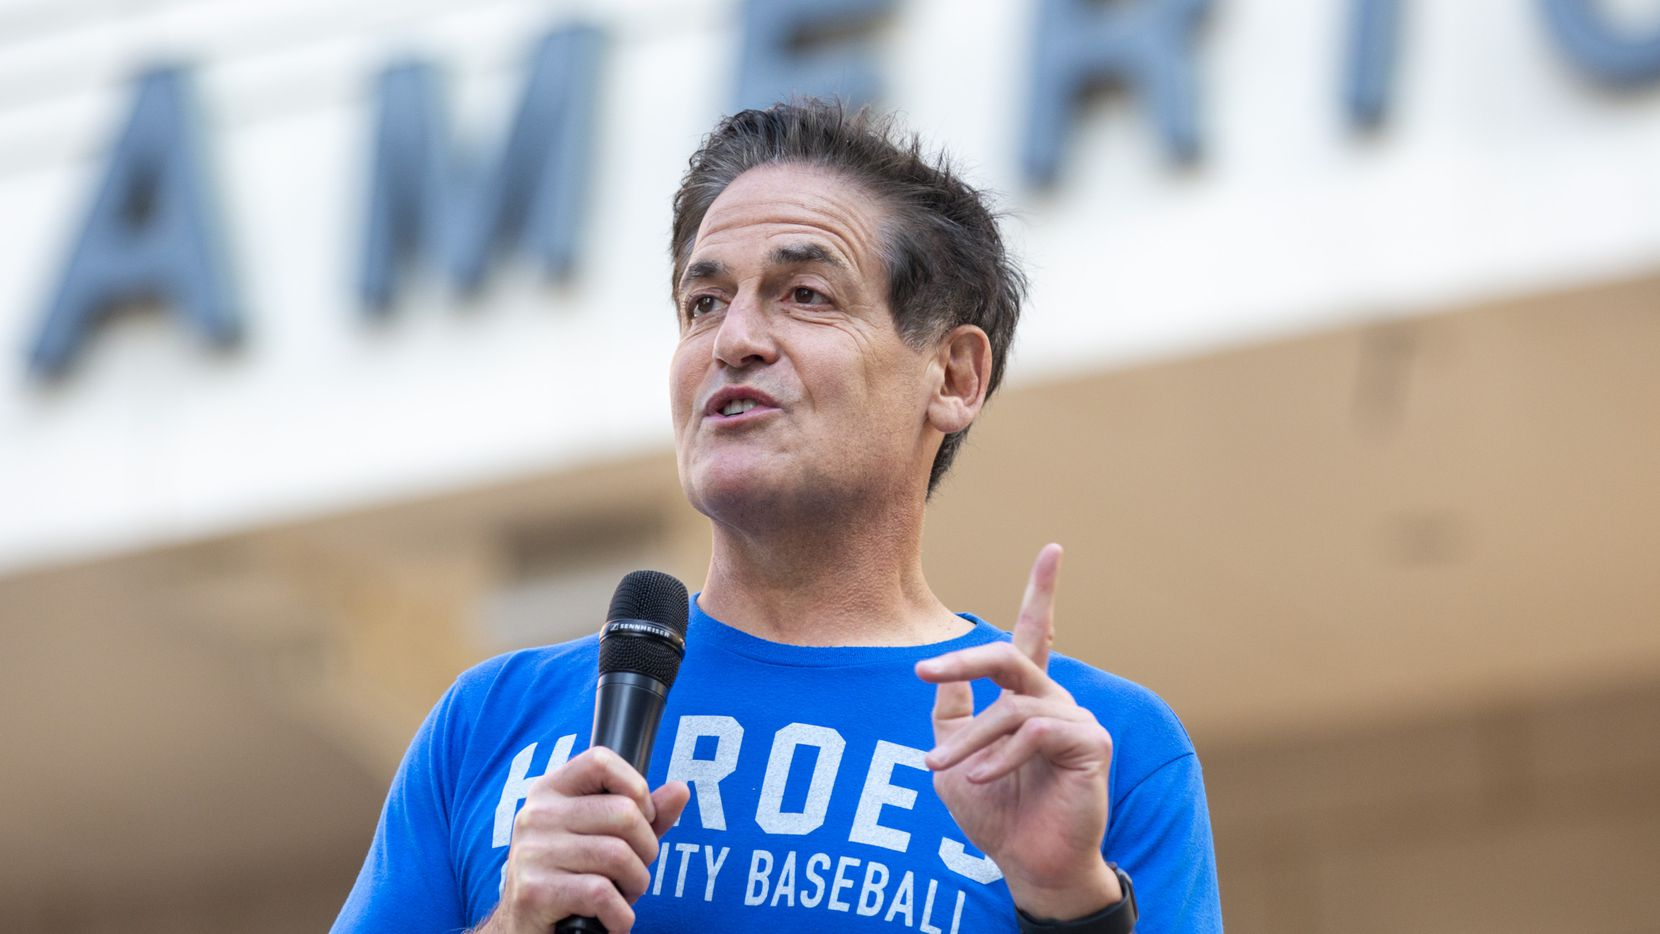 Dallas Mavericks Owner Mark Cuban will participate on Wednesday in a virtual fundraiser for Democrat Joe Biden's White House campaign.